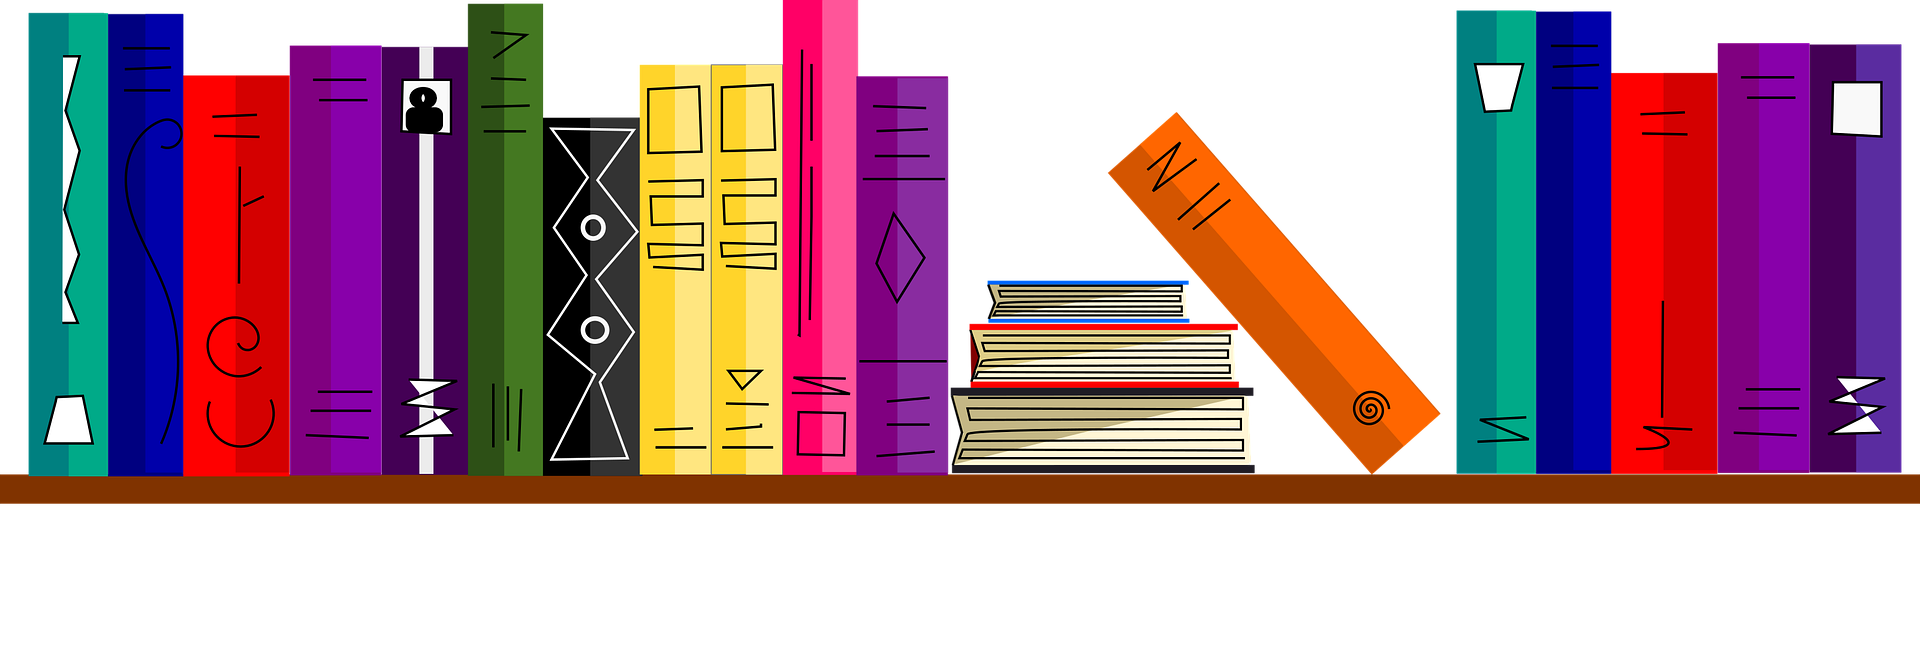 books-5093228_1920.png